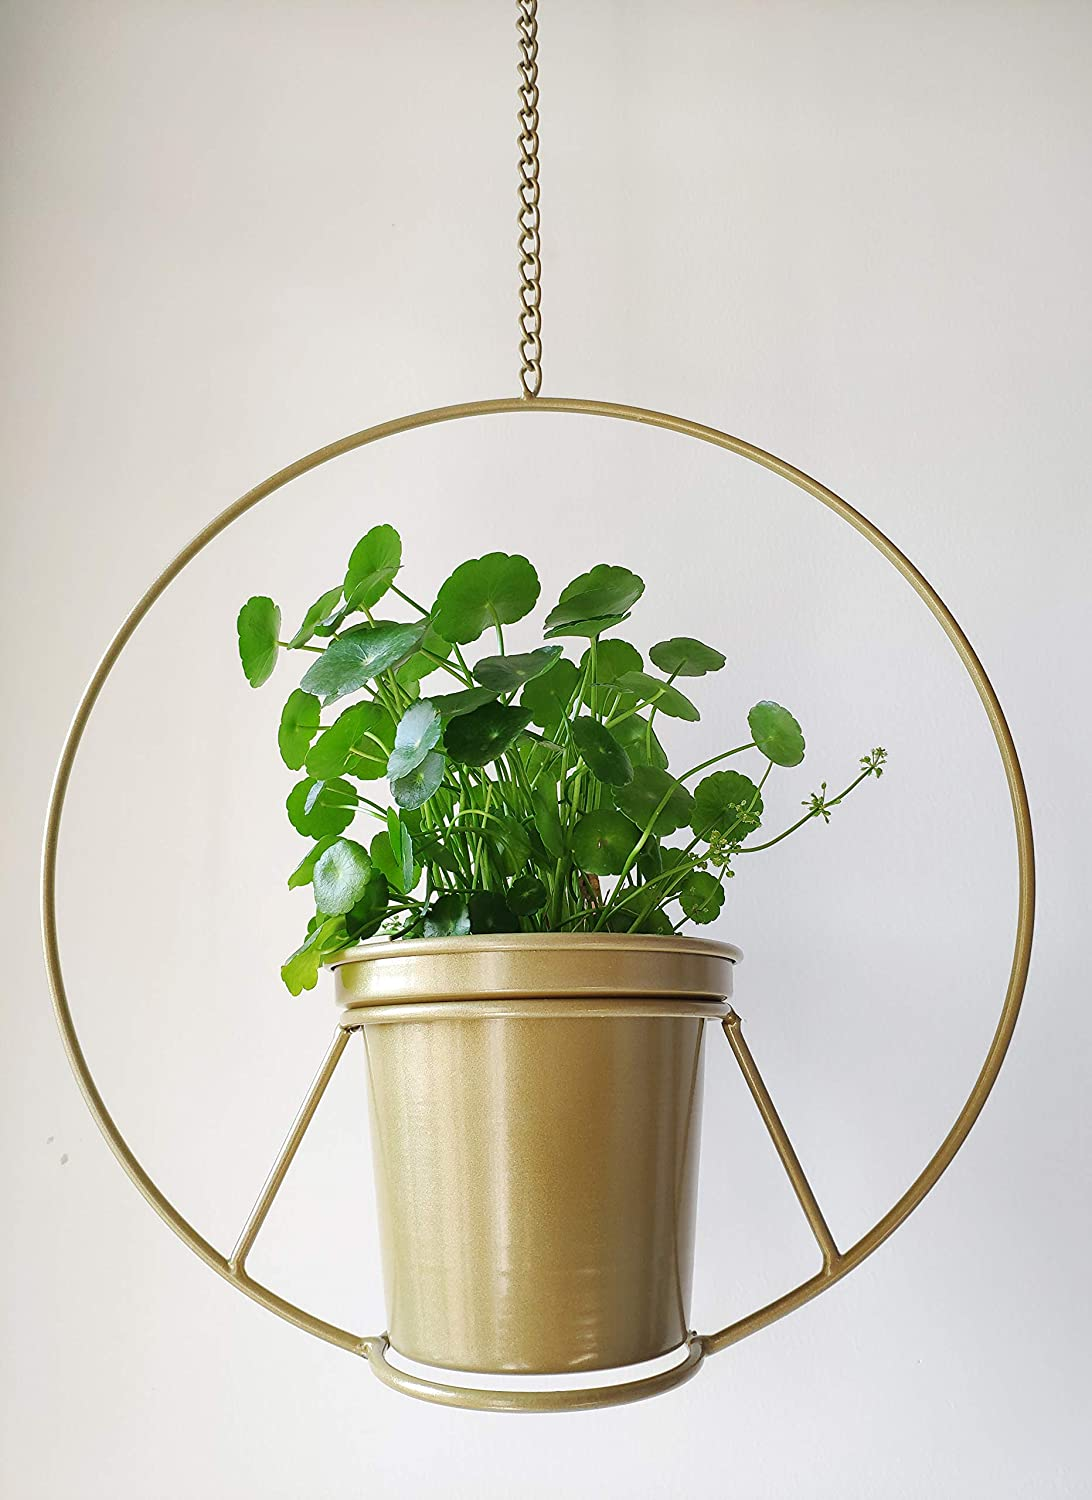 RISEON Boho Outstanding Gold Metal Plant Deluxe Hanger Planter Round Hanging